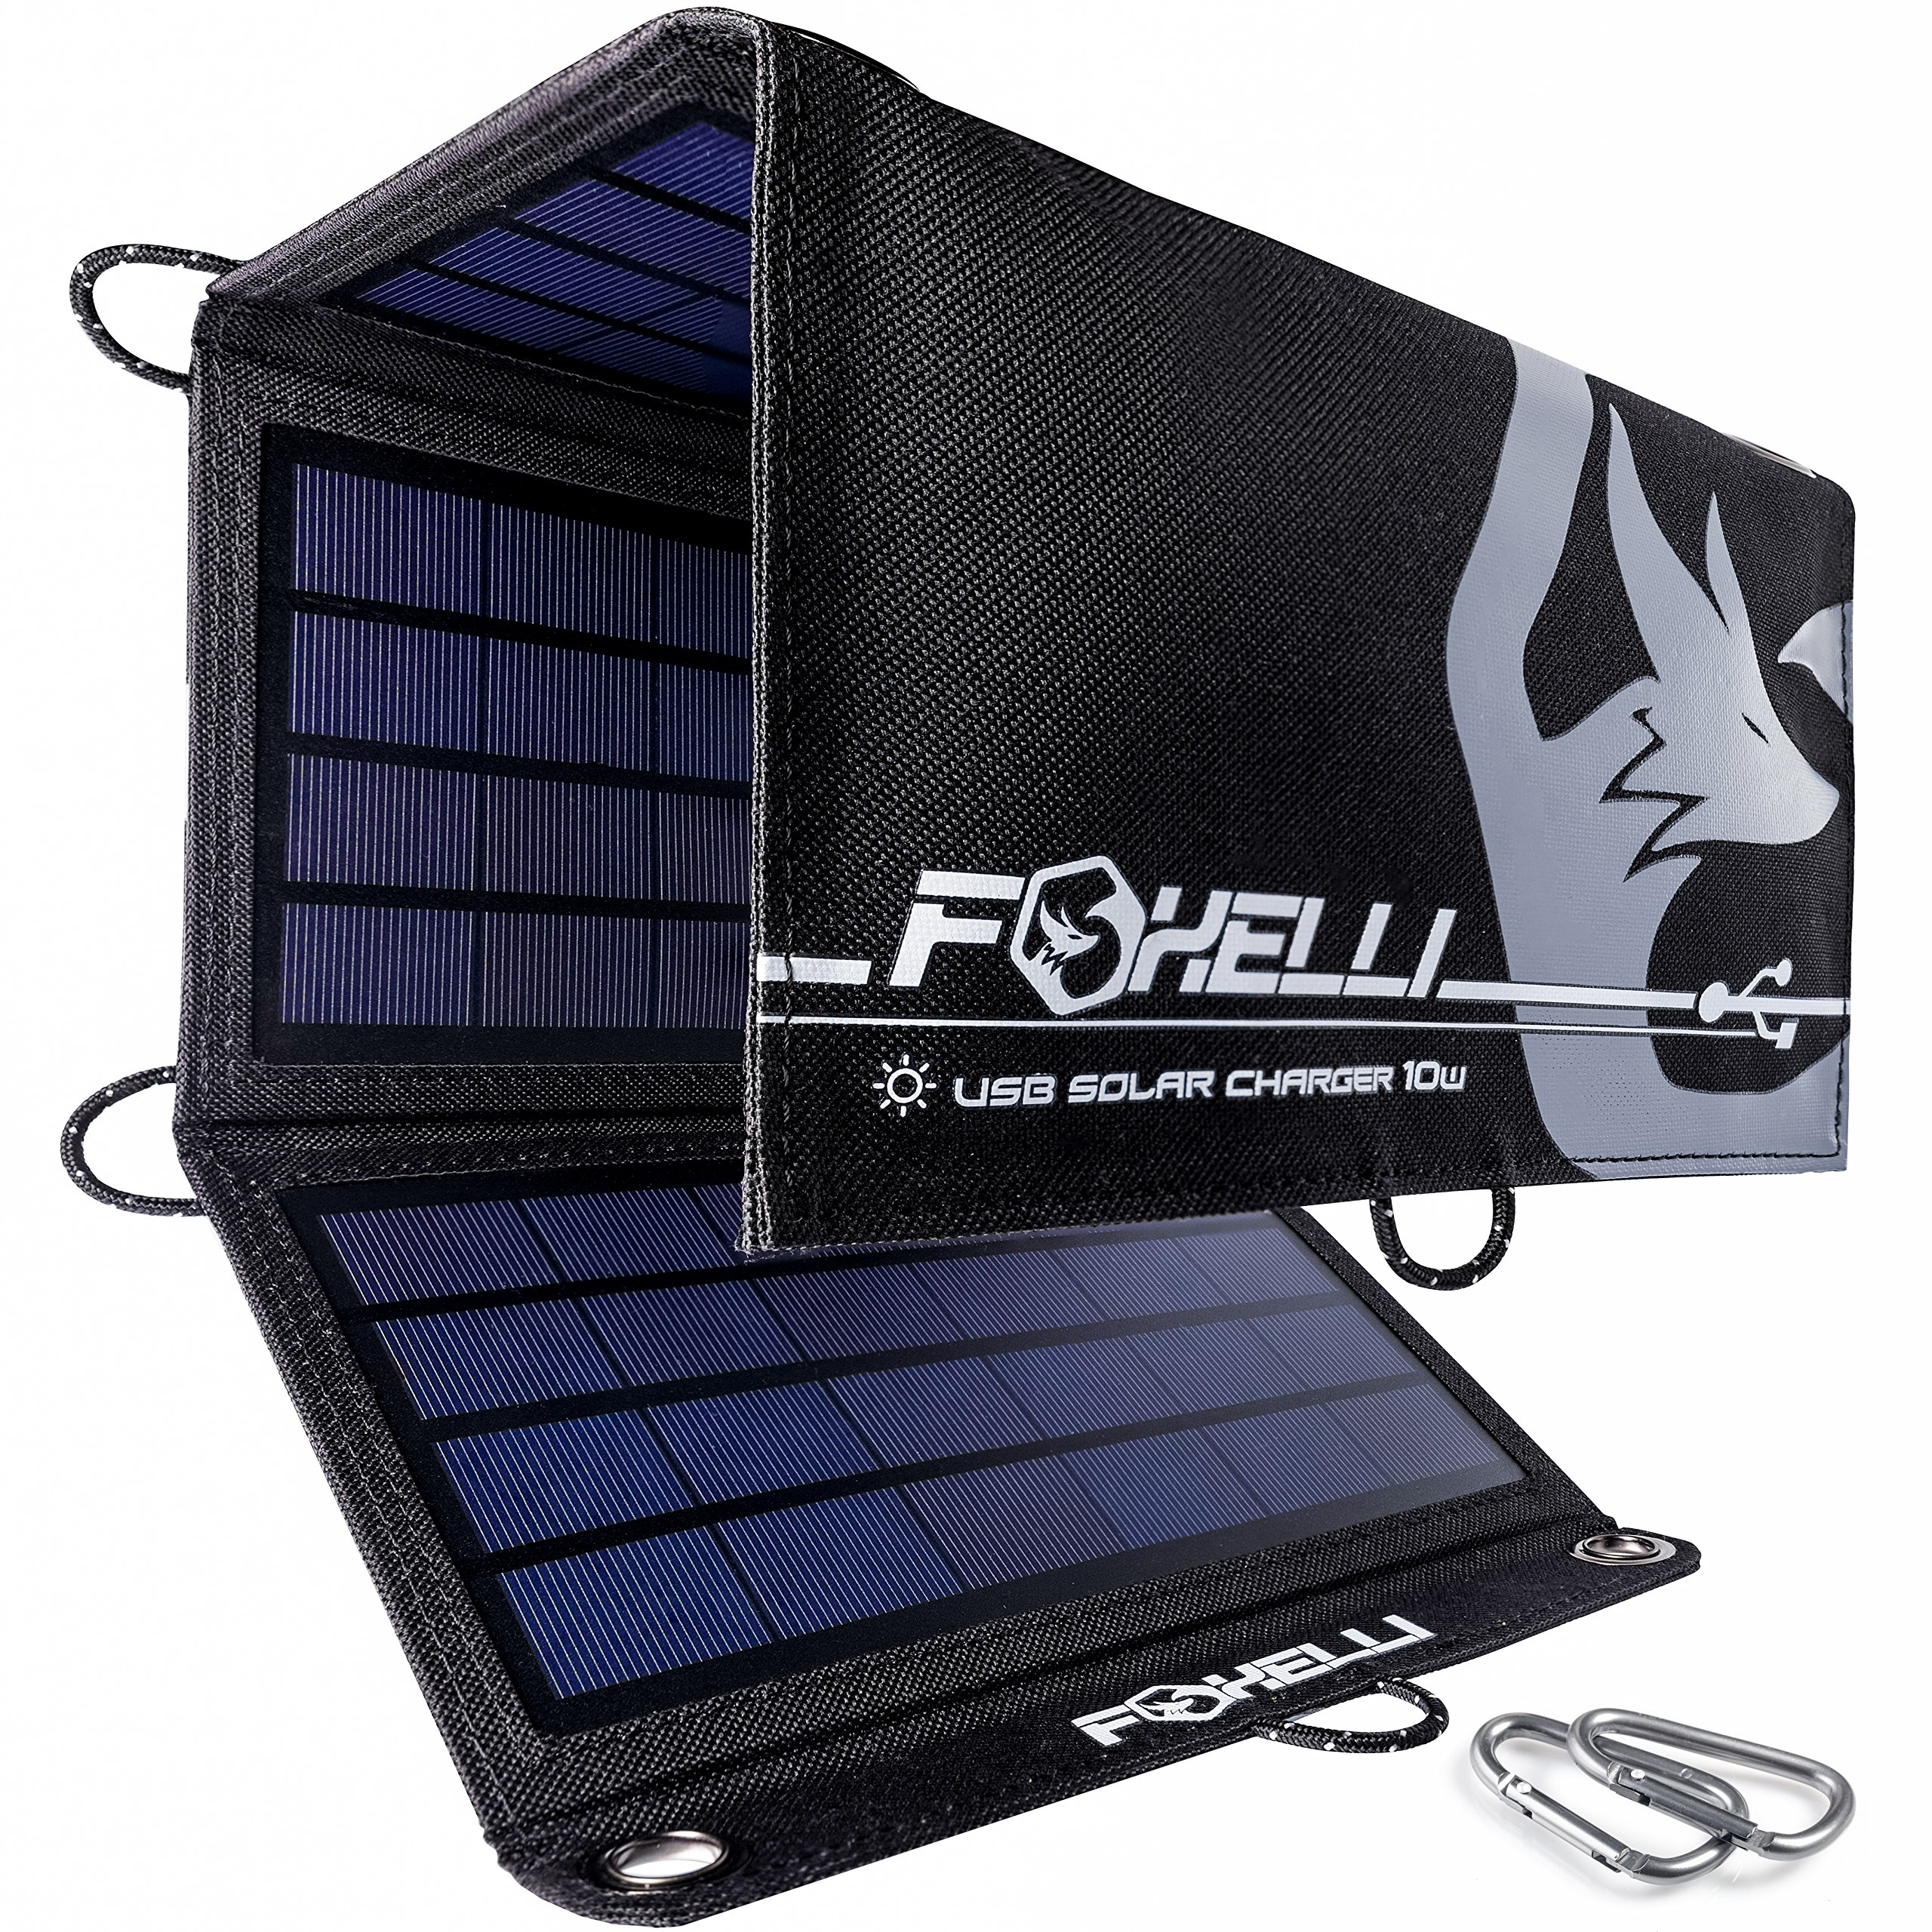 Foxelli Dual USB Solar Charger 10W - Foldable Solar Panel Phone Charger for iPhone & Android Smartphones, iPads, Android Tablets, Power Banks & More, Portable Solar Power for Camping & Outdoors by Foxelli